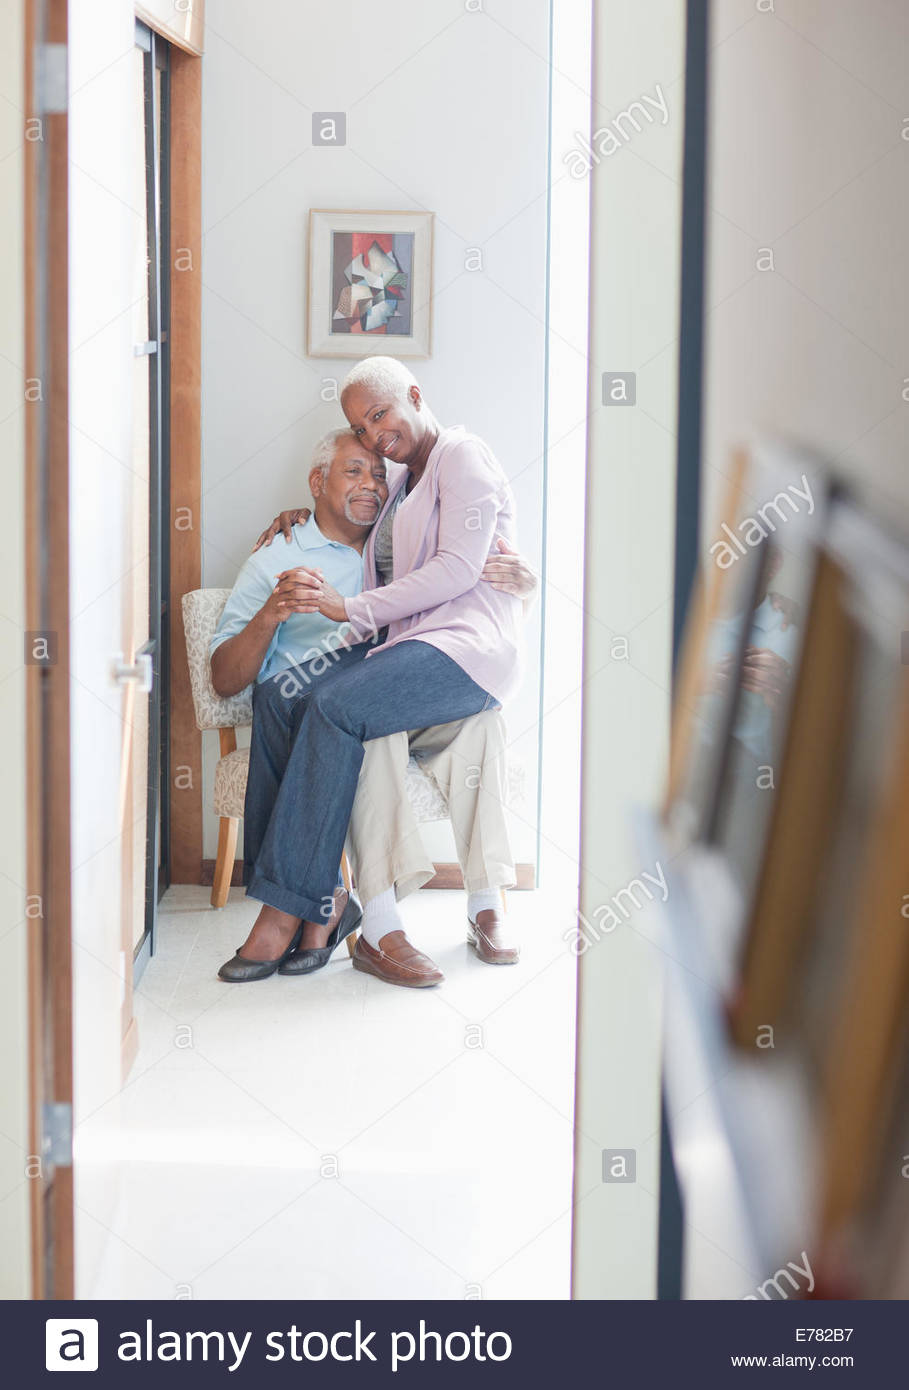 Older couple sitting together indoors - Stock Image